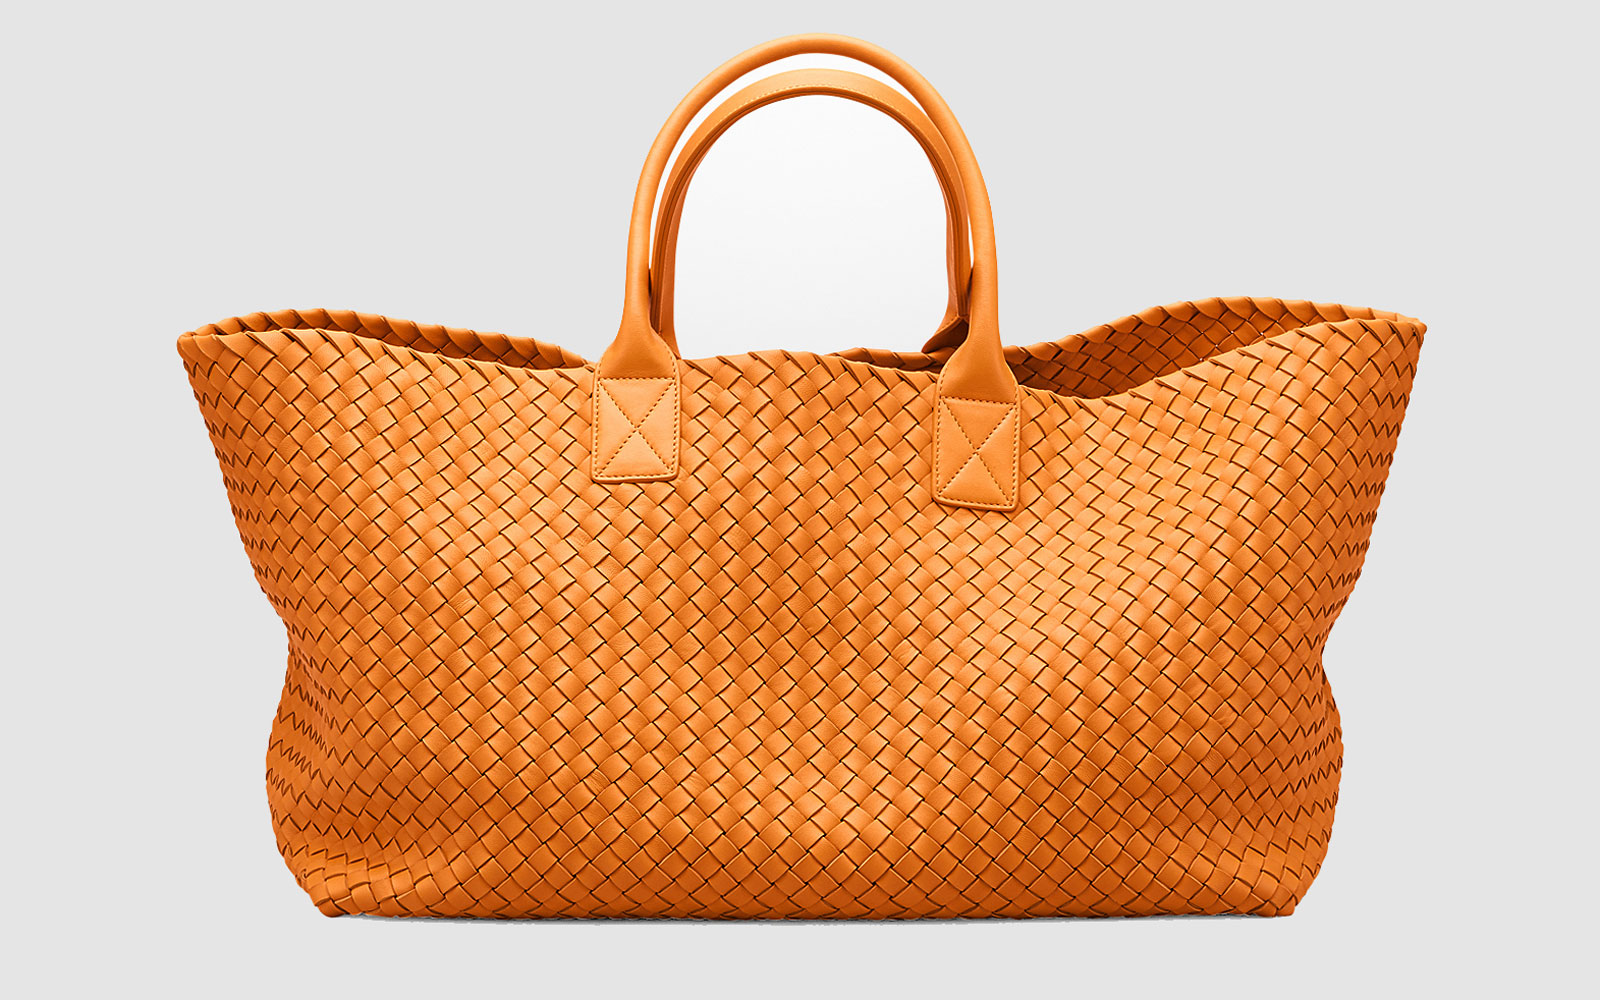 Bottega Veneta Cabat Travel Bag